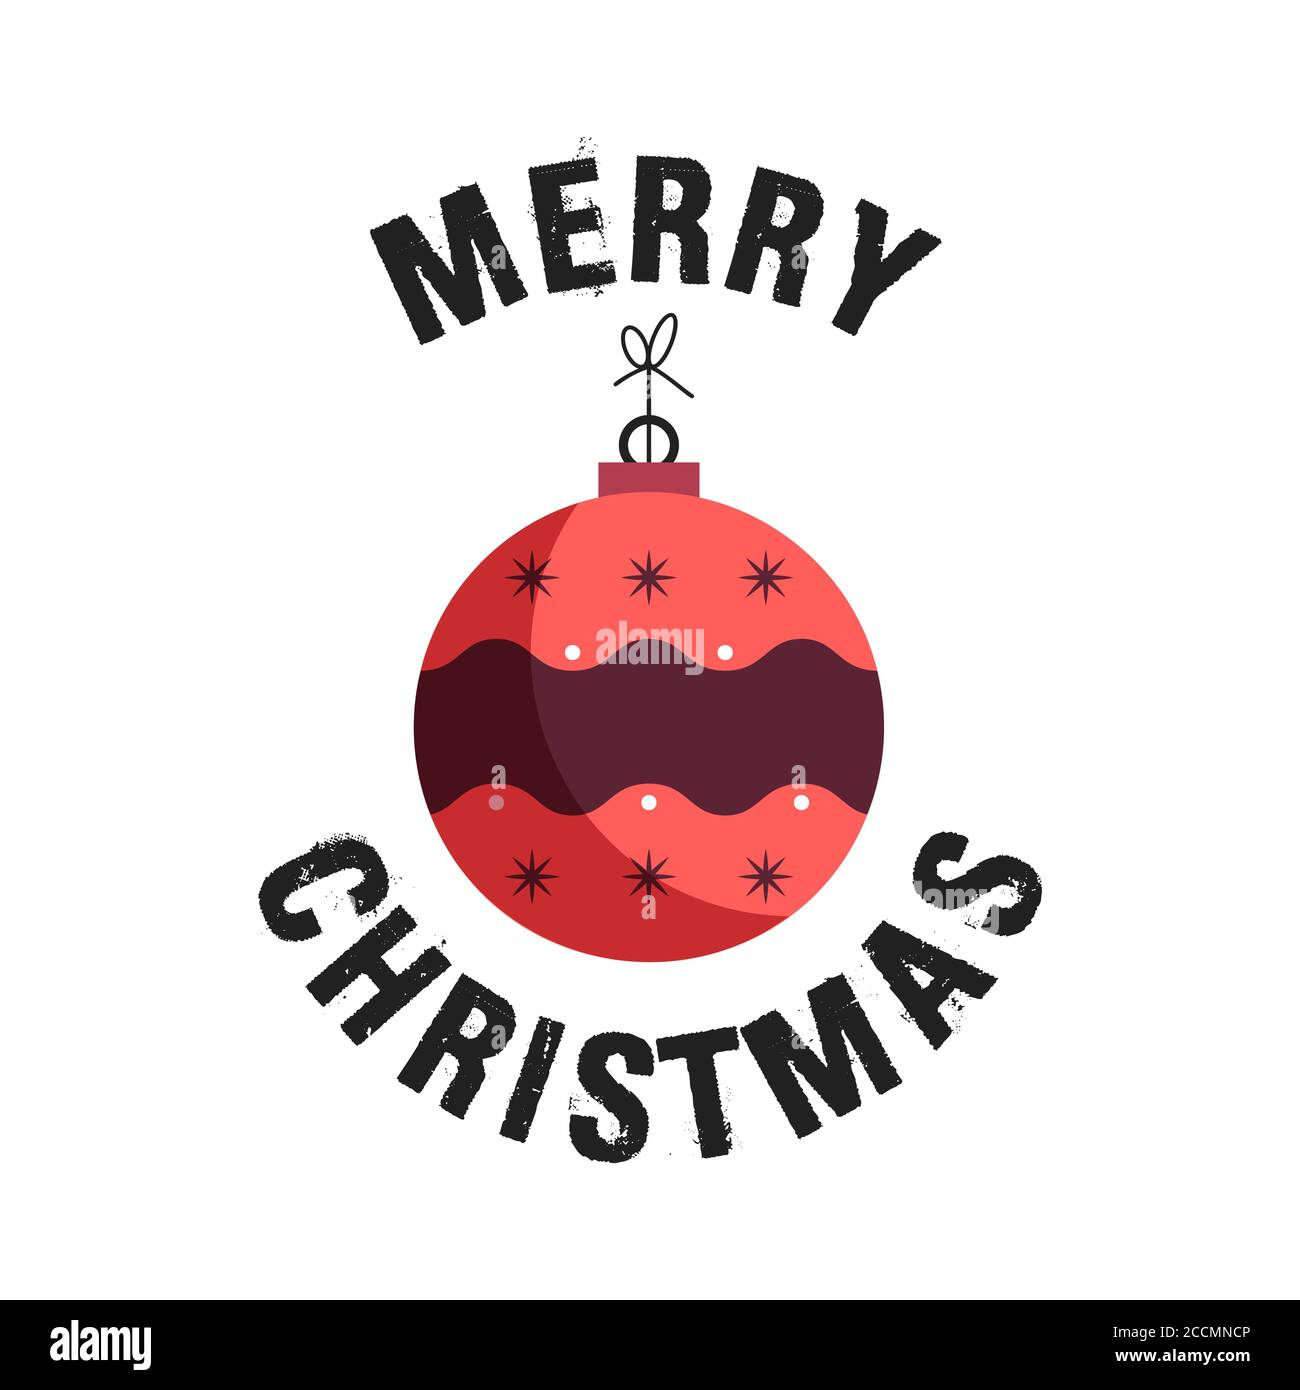 Merry Christmas badge design with xmas ball toy. Xmas typography emblem label llustration. Stock vector print for t shirt, logotype, cards Stock Vector